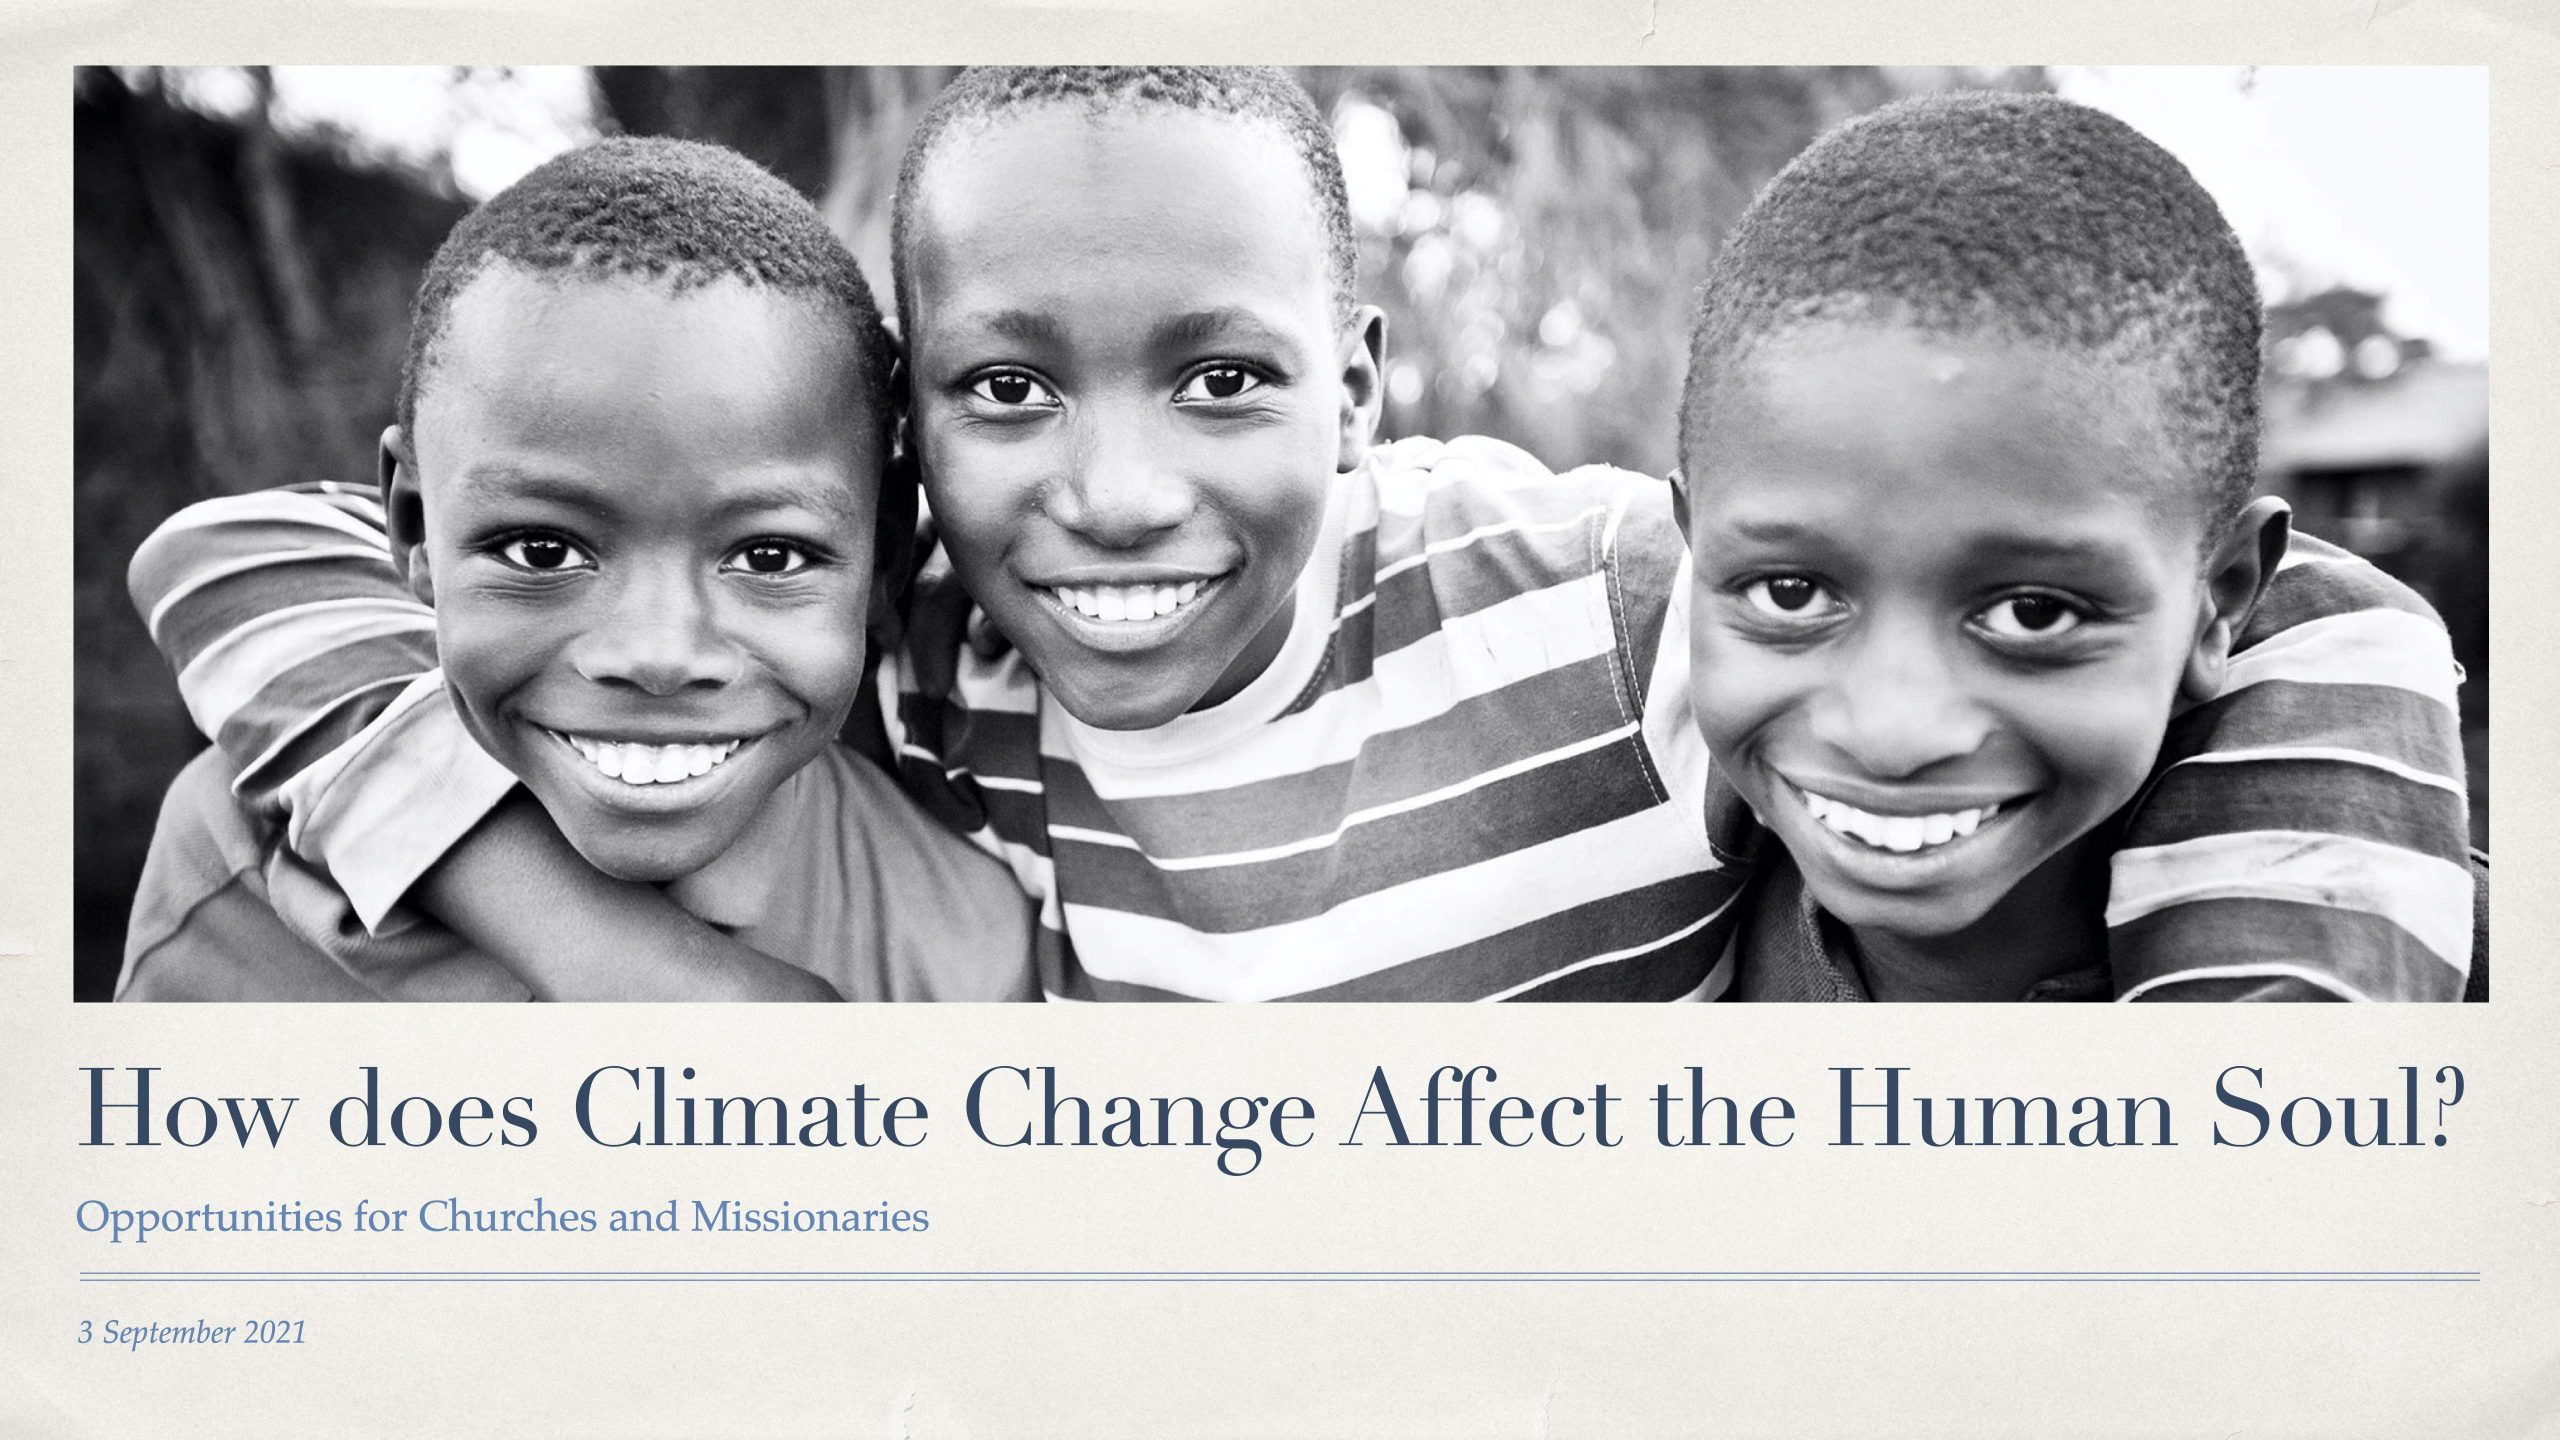 How does Climate Change Affect the Human Soul?